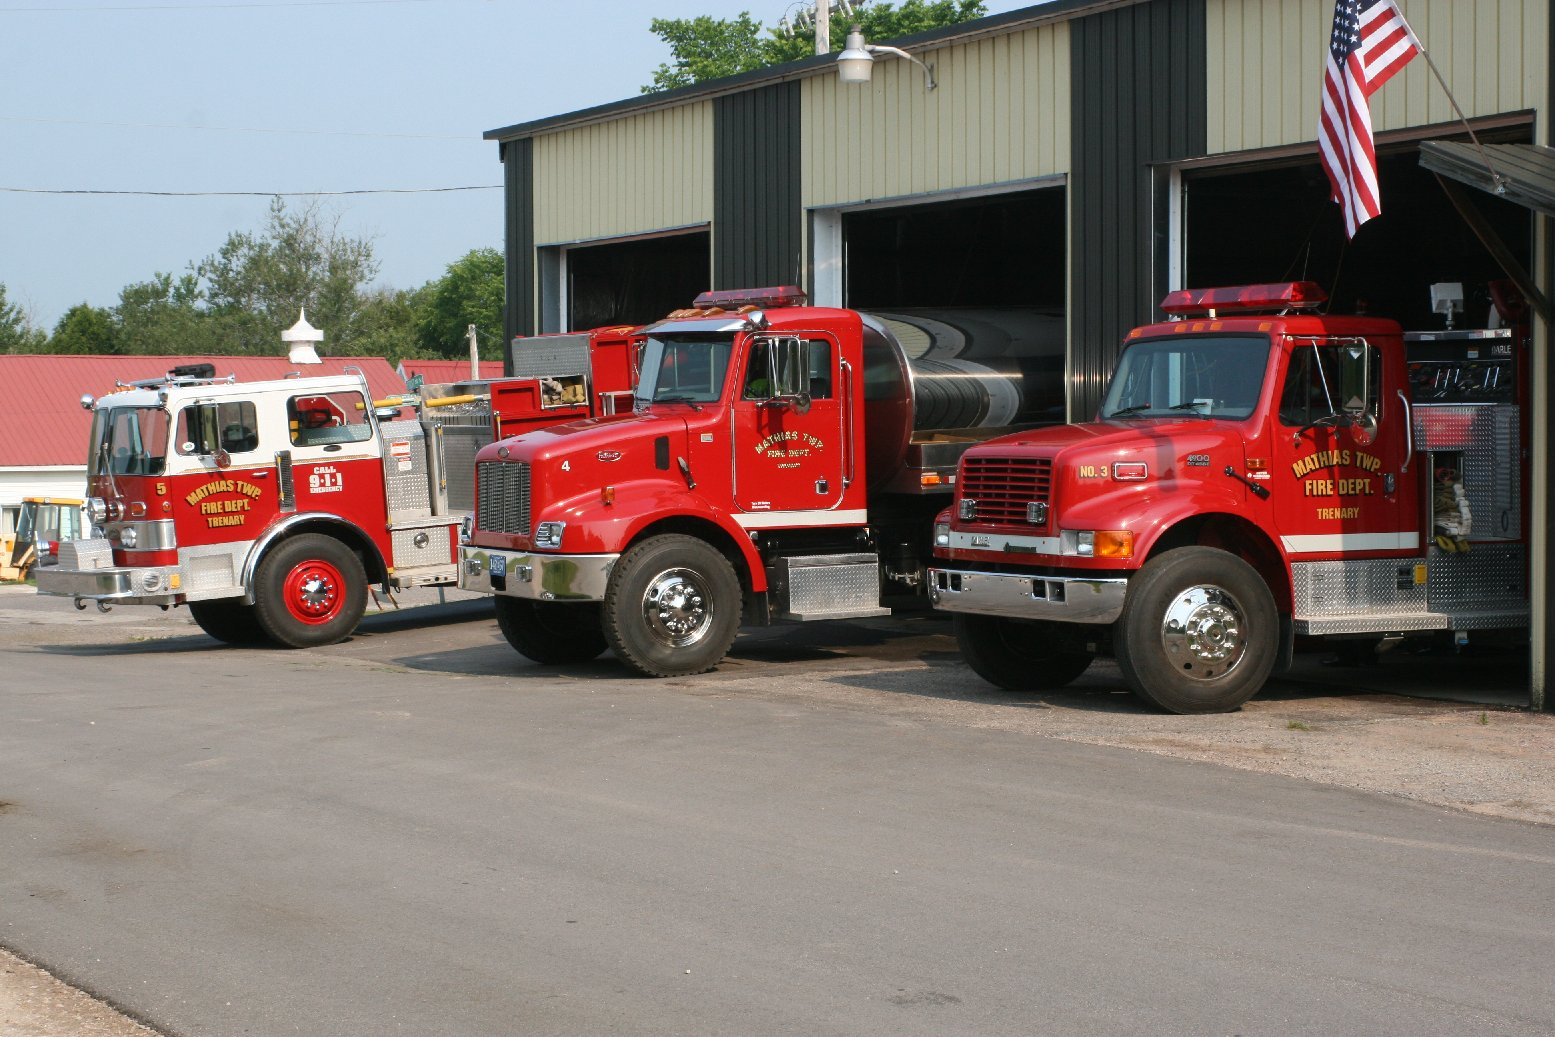 Michigan alger county trenary - The Mathias Township Volunteer Fire Department Is A Small Highly Trained Fire Department Originally Created In 1947 And Has A Current Roster Of 19 Members